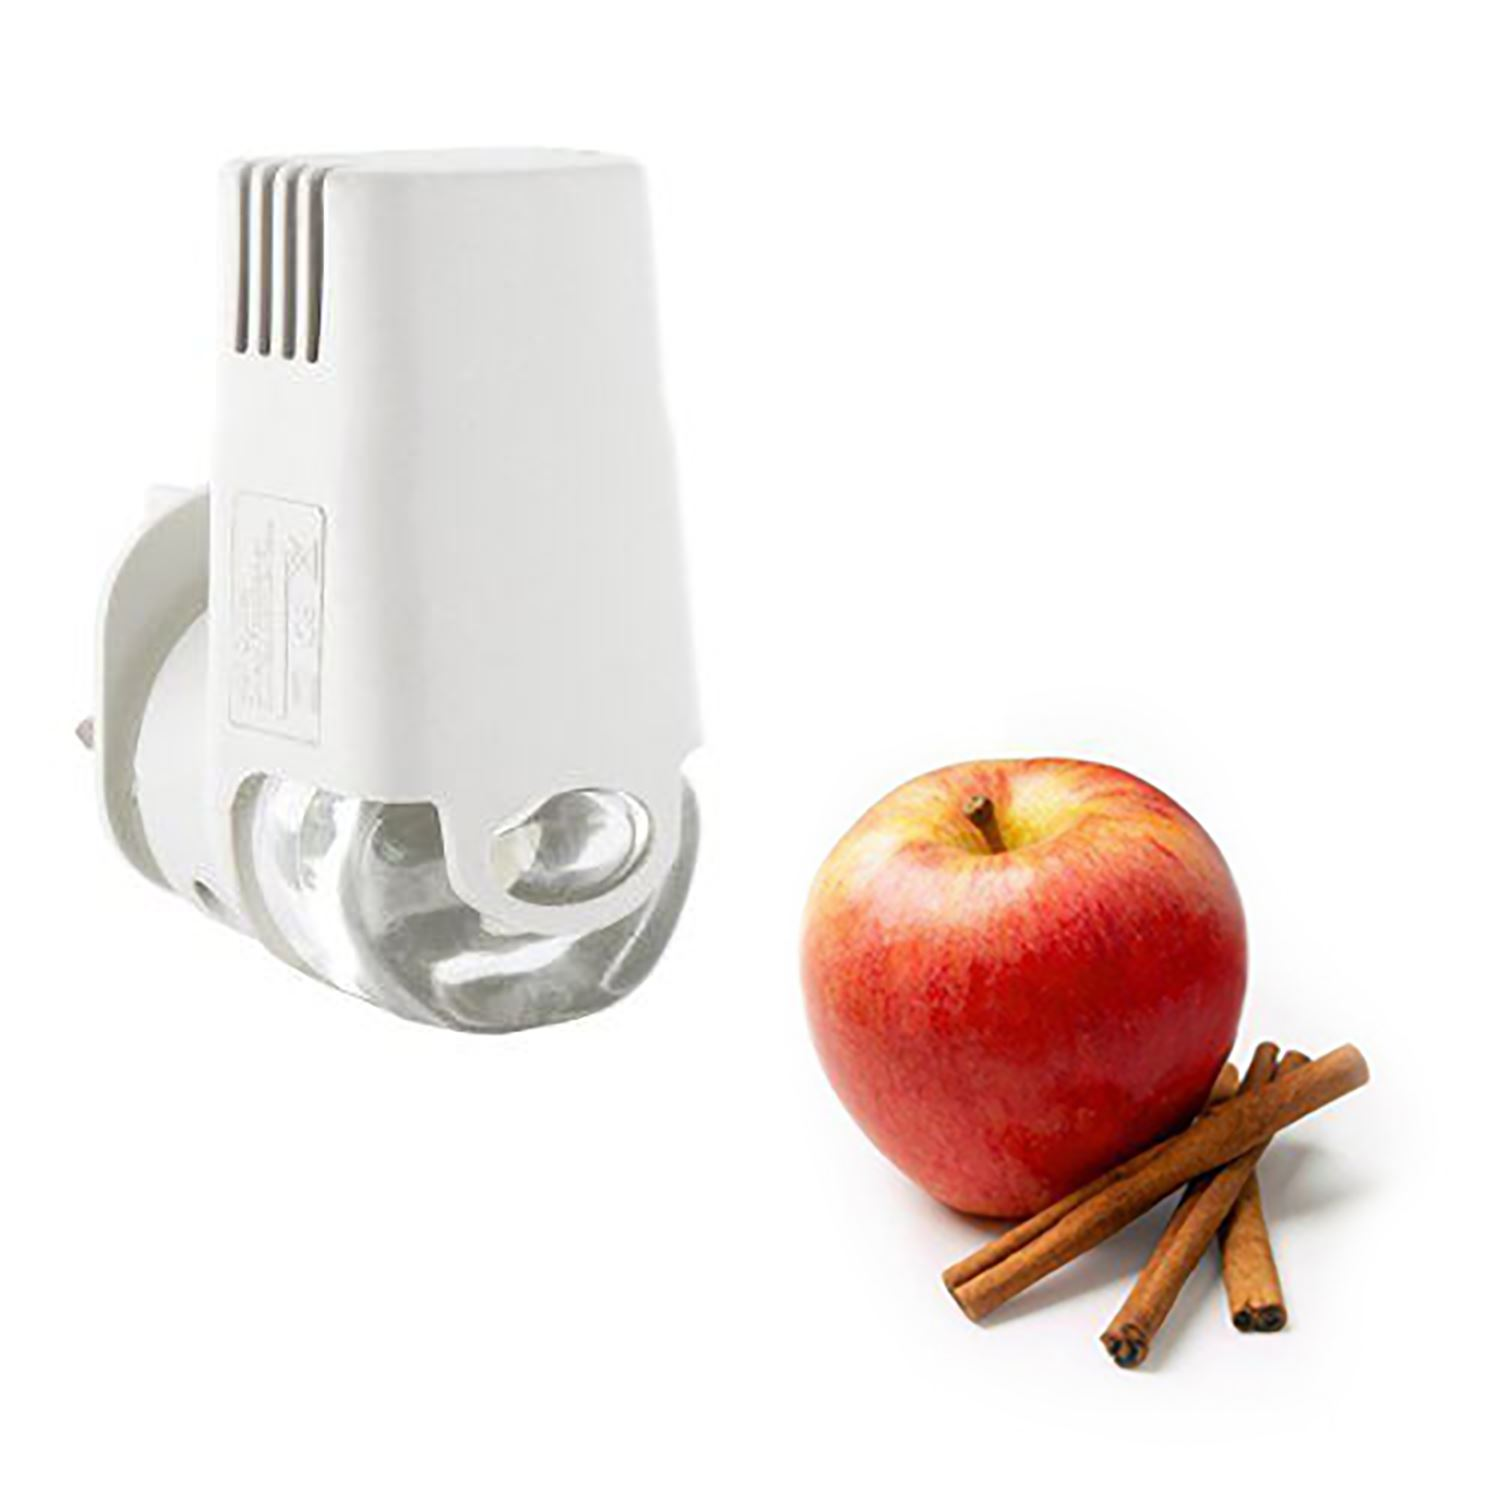 decorative plug in air fresheners for home